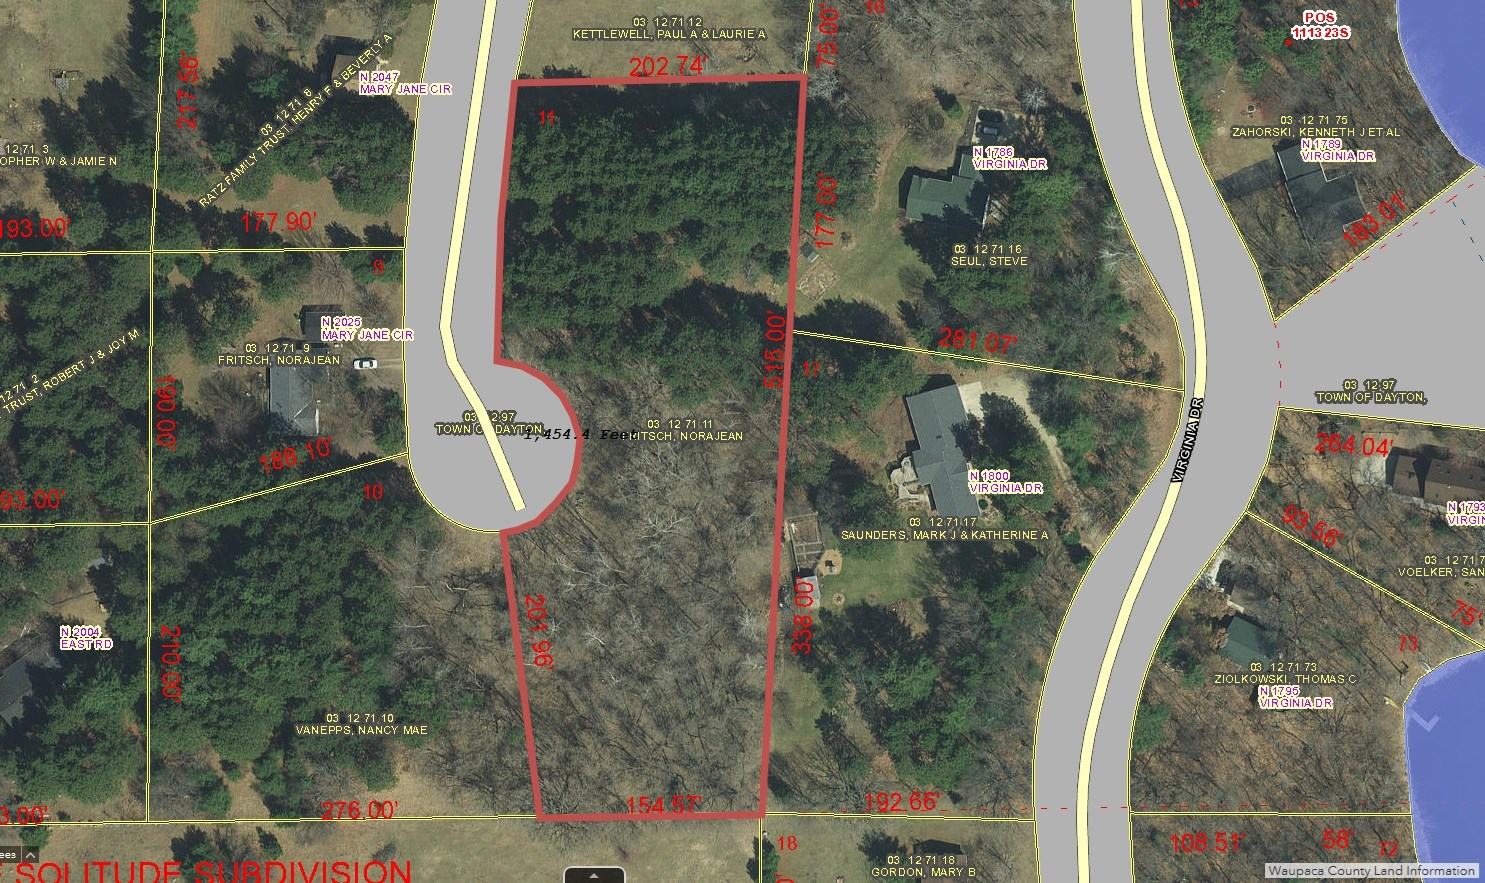 Buildable Lot for sale Waupaca, WI